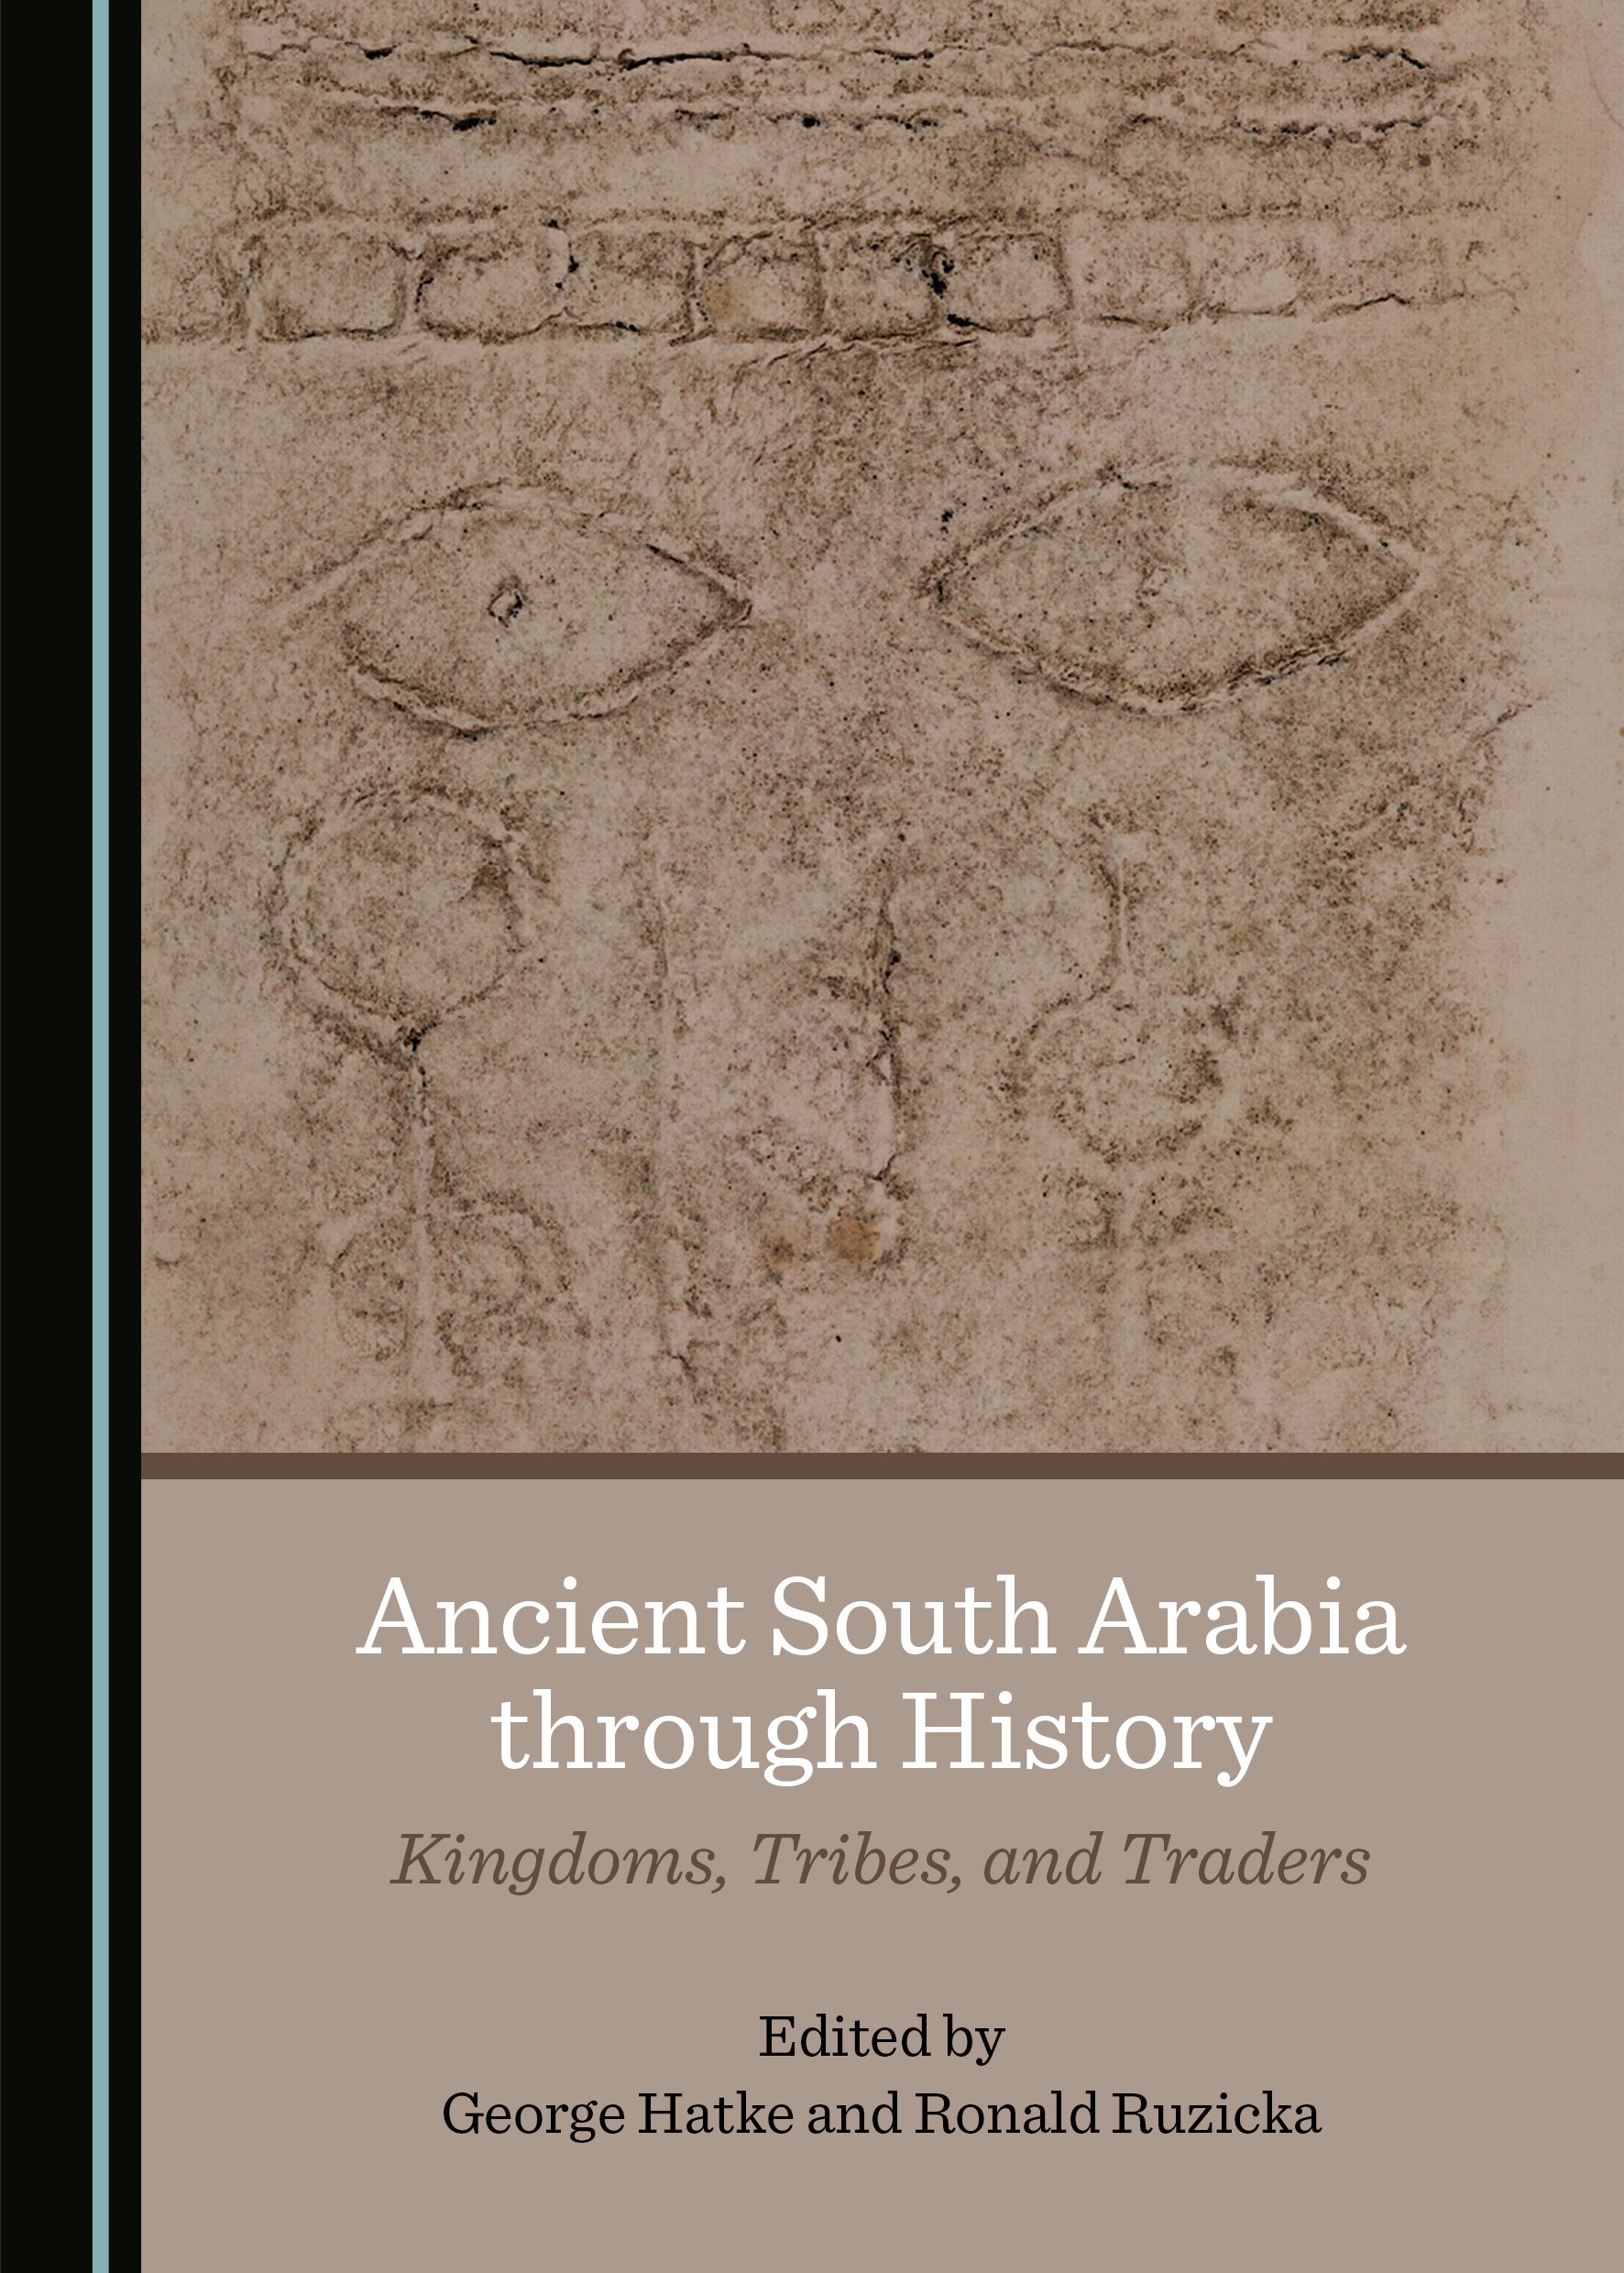 Ancient South Arabia through History: Kingdoms, Tribes, and Traders